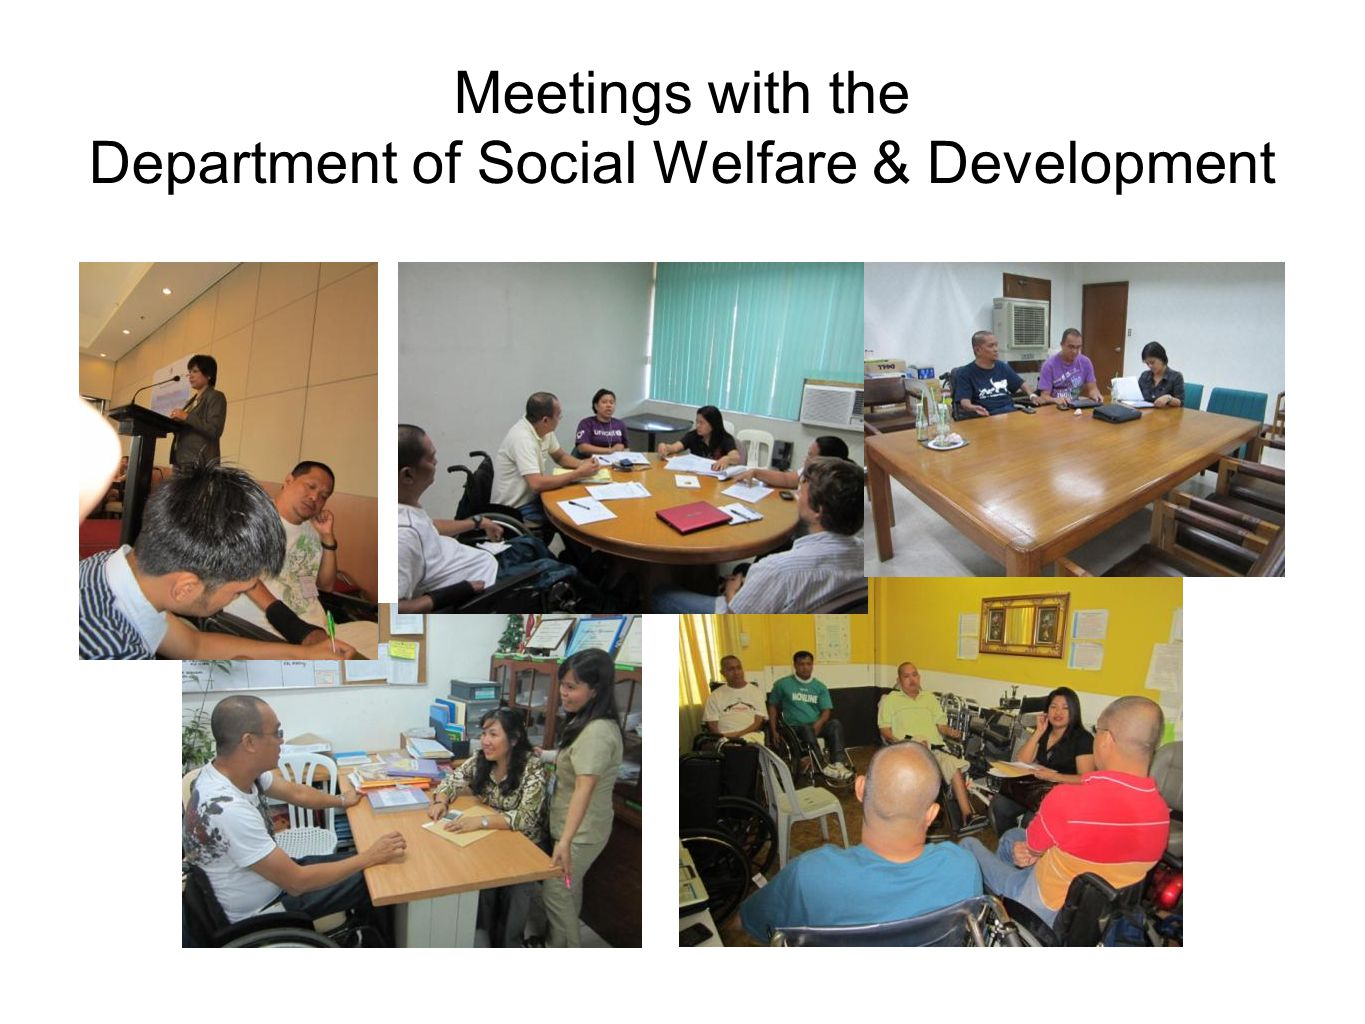 Meetings with the Department of Social Welfare & Development